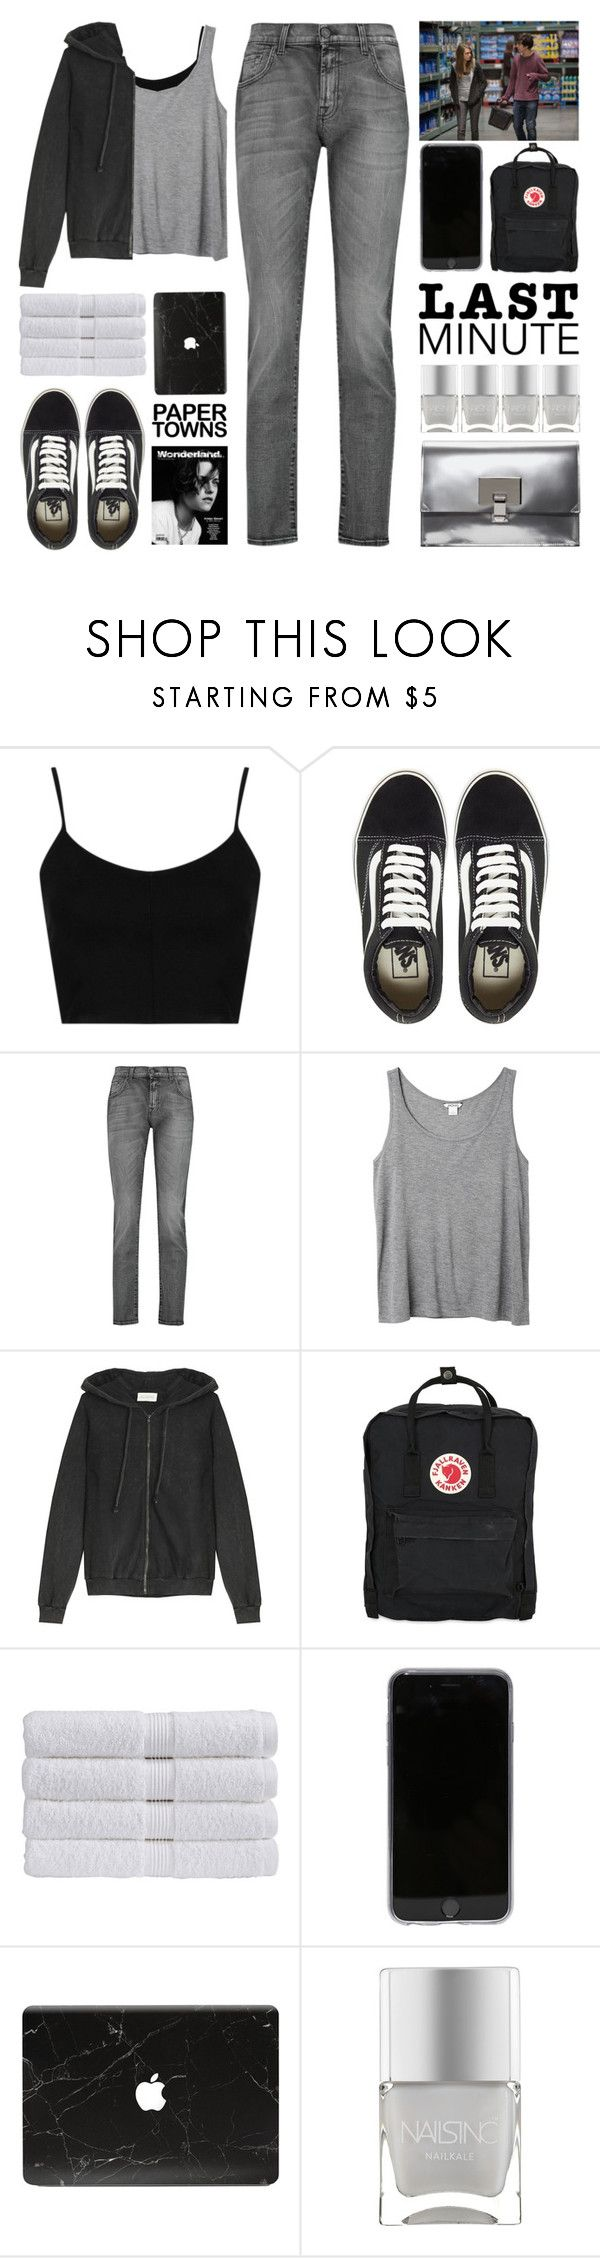 """Last Minute Haloween Costume : Margo Paper Towns"" by igedesubawa ❤ liked on Polyvore featuring Topshop, Vans, 7 For All Mankind, Monki, American Vintage, Fjällräven, Christy, Nails Inc. and Proenza Schouler"